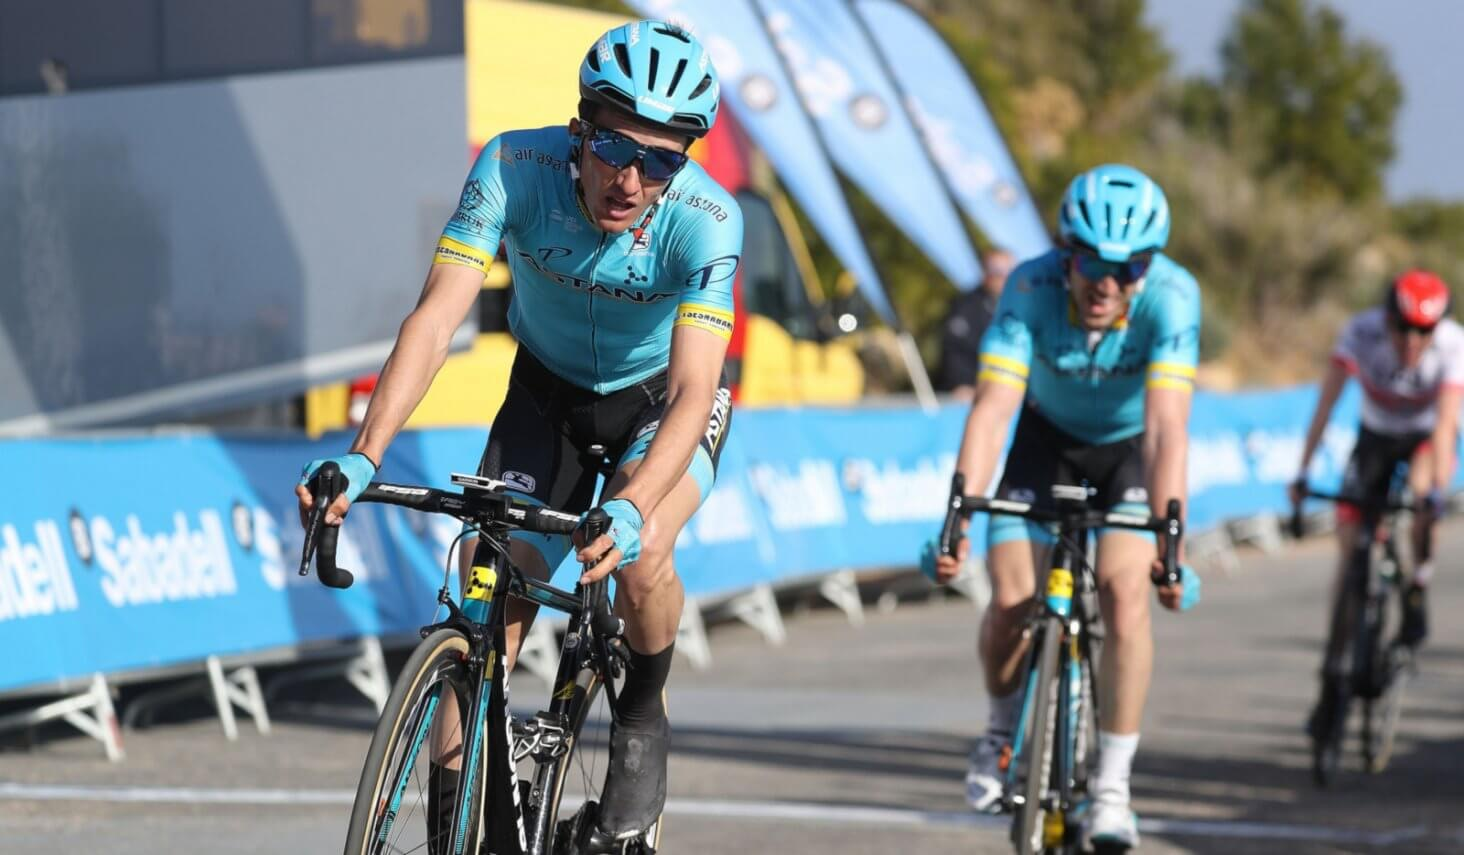 VALENCIANA: BILBAO THIRD IN QUEEN STAGE AS IZAGIRRE TAKES LEAD